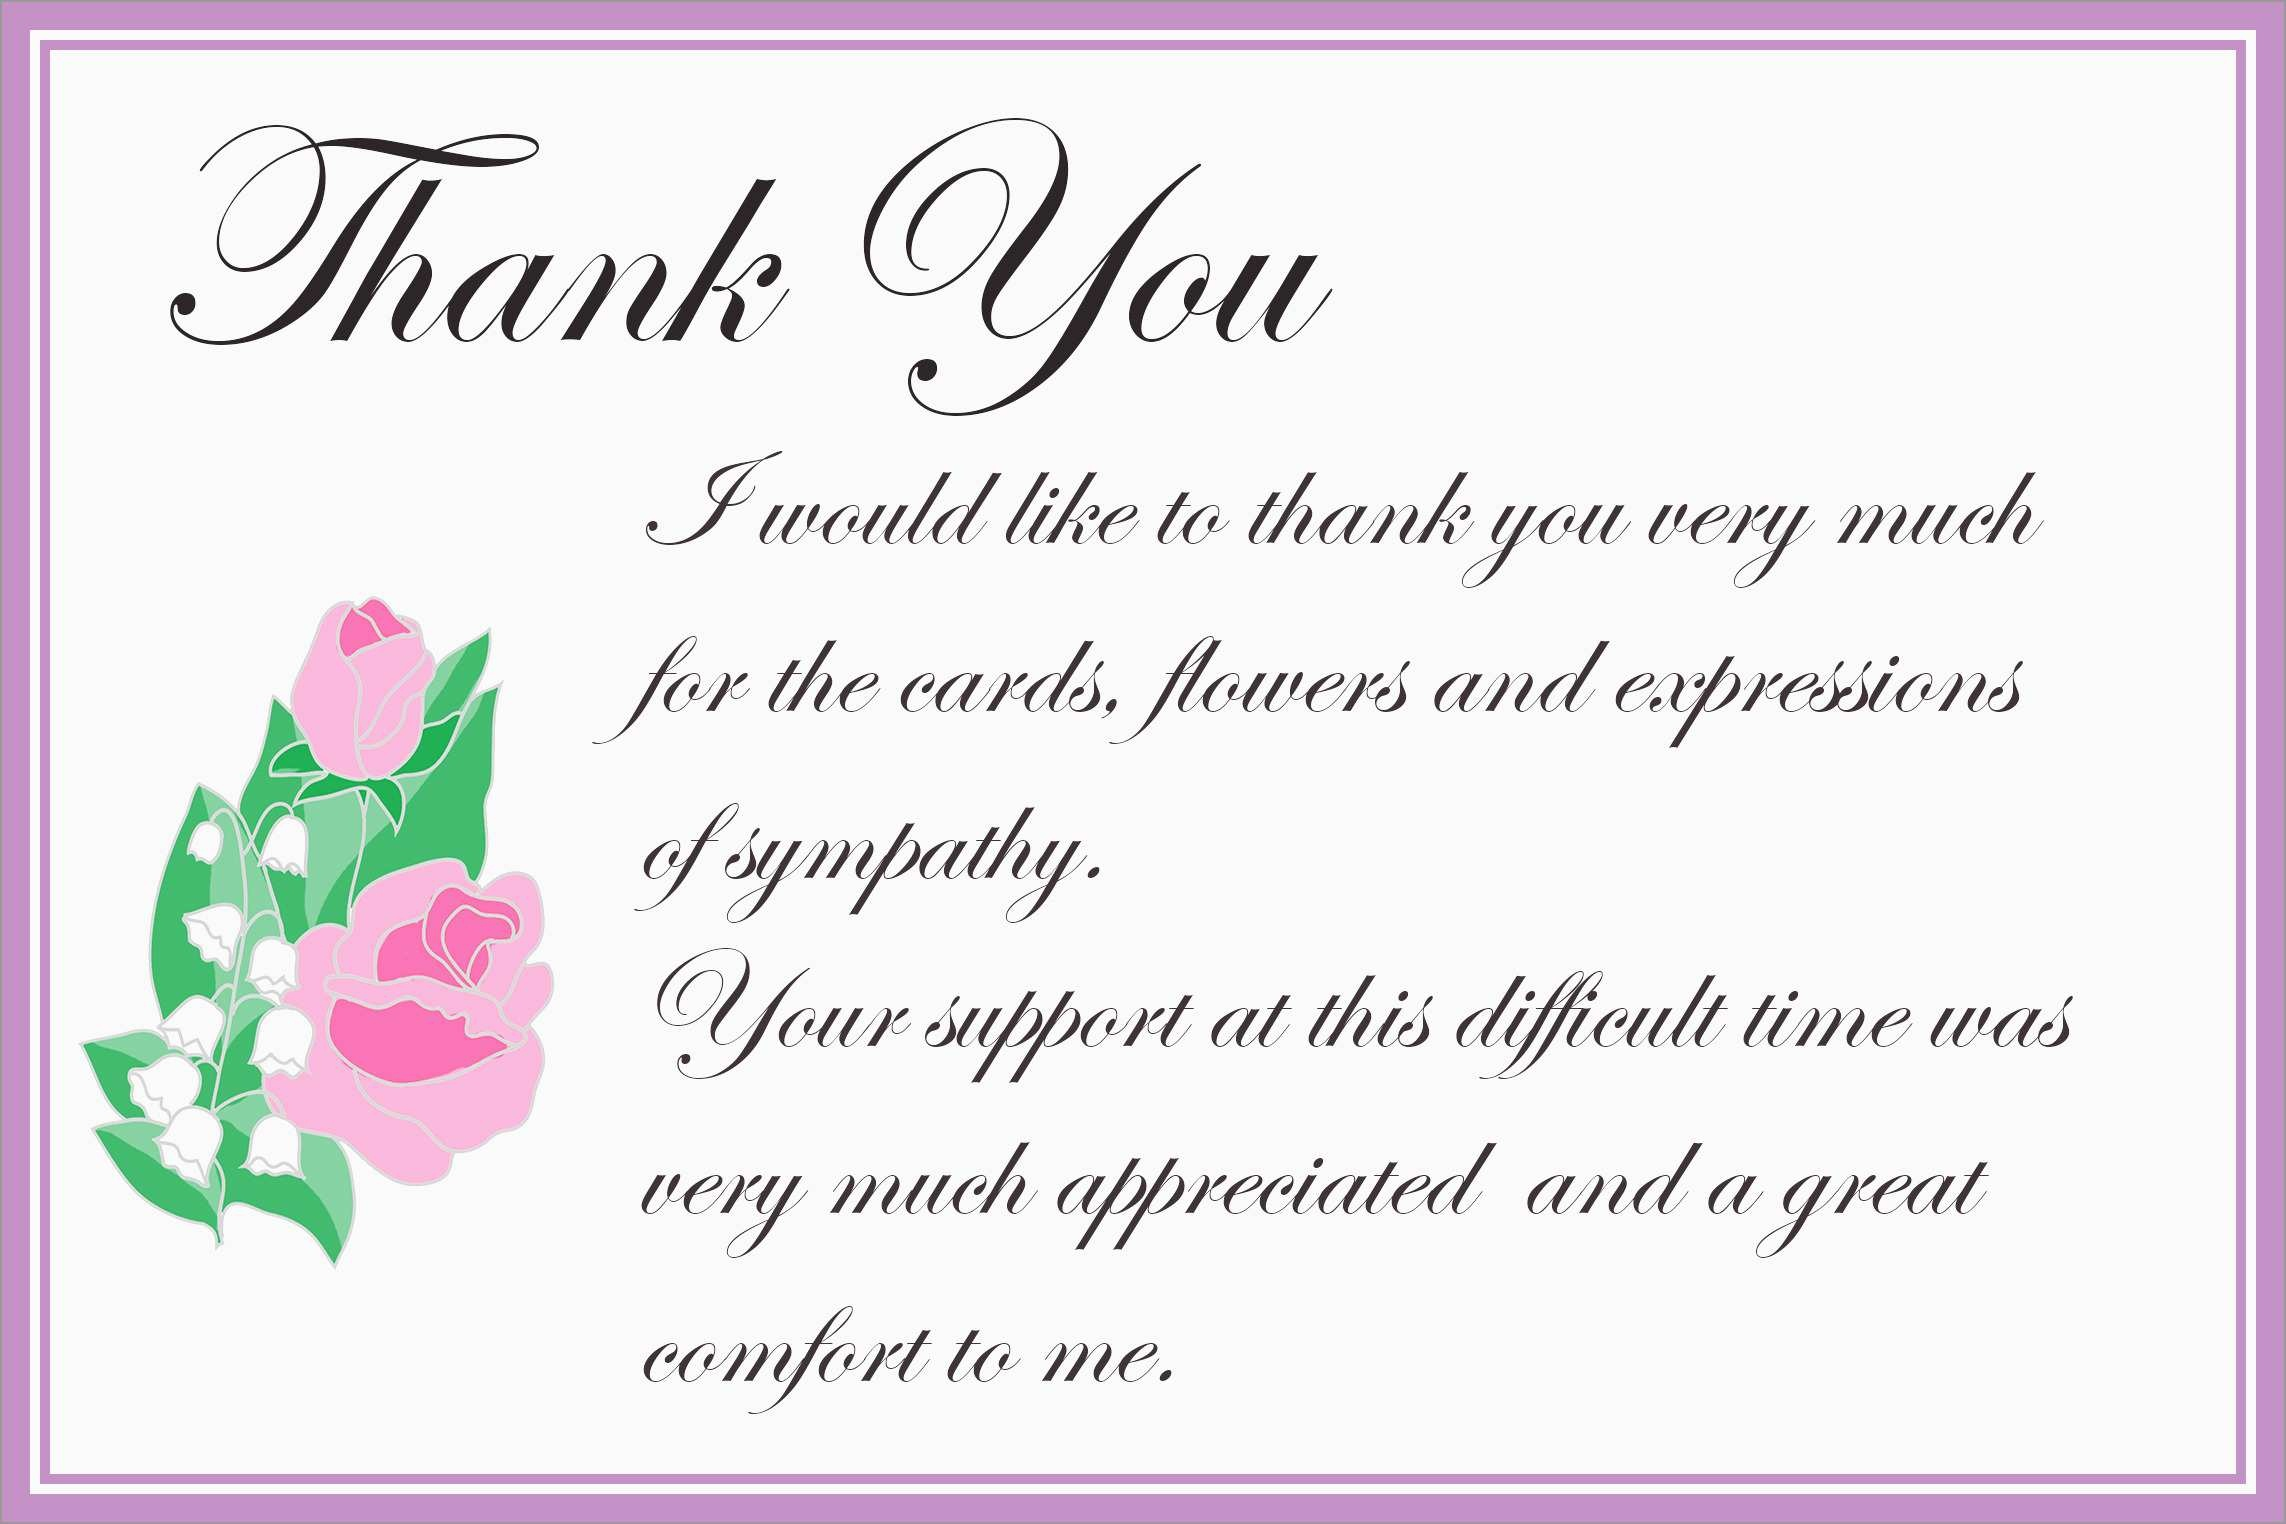 Beautiful Free Funeral Thank You Cards Templates | Best Of Template - Thank You Sympathy Cards Free Printable